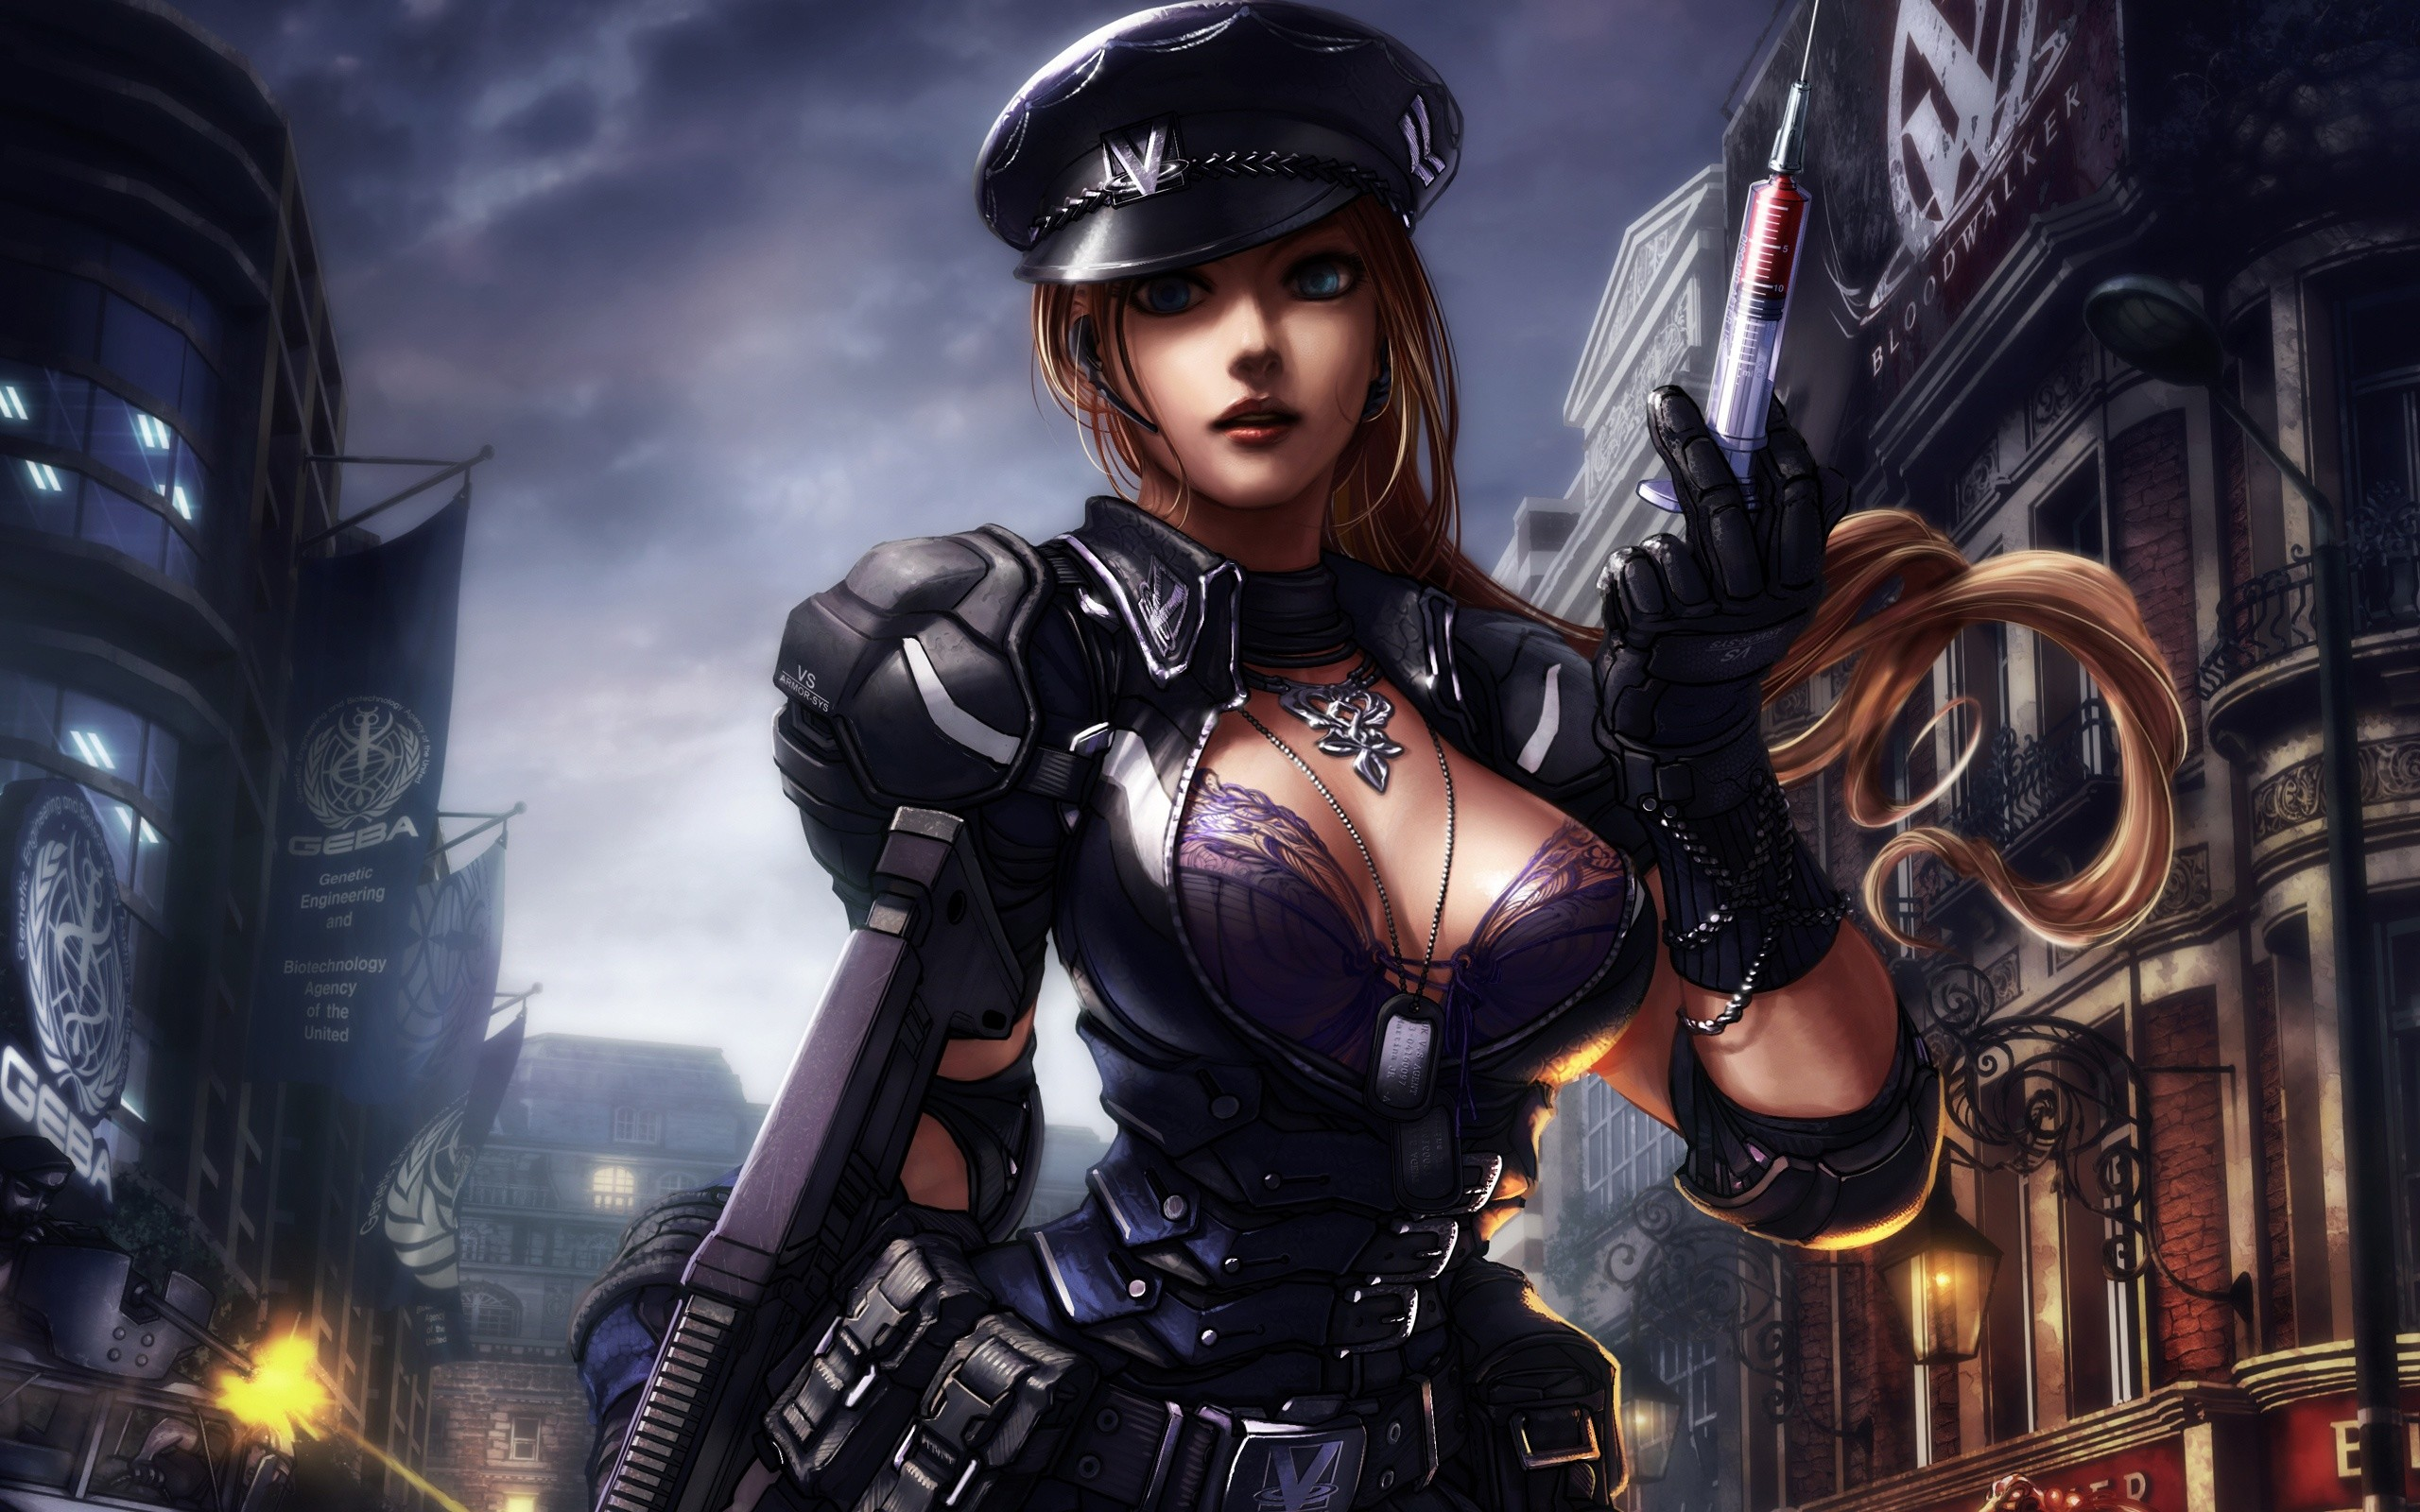 awesome games for girls girl games - HD1680×1050